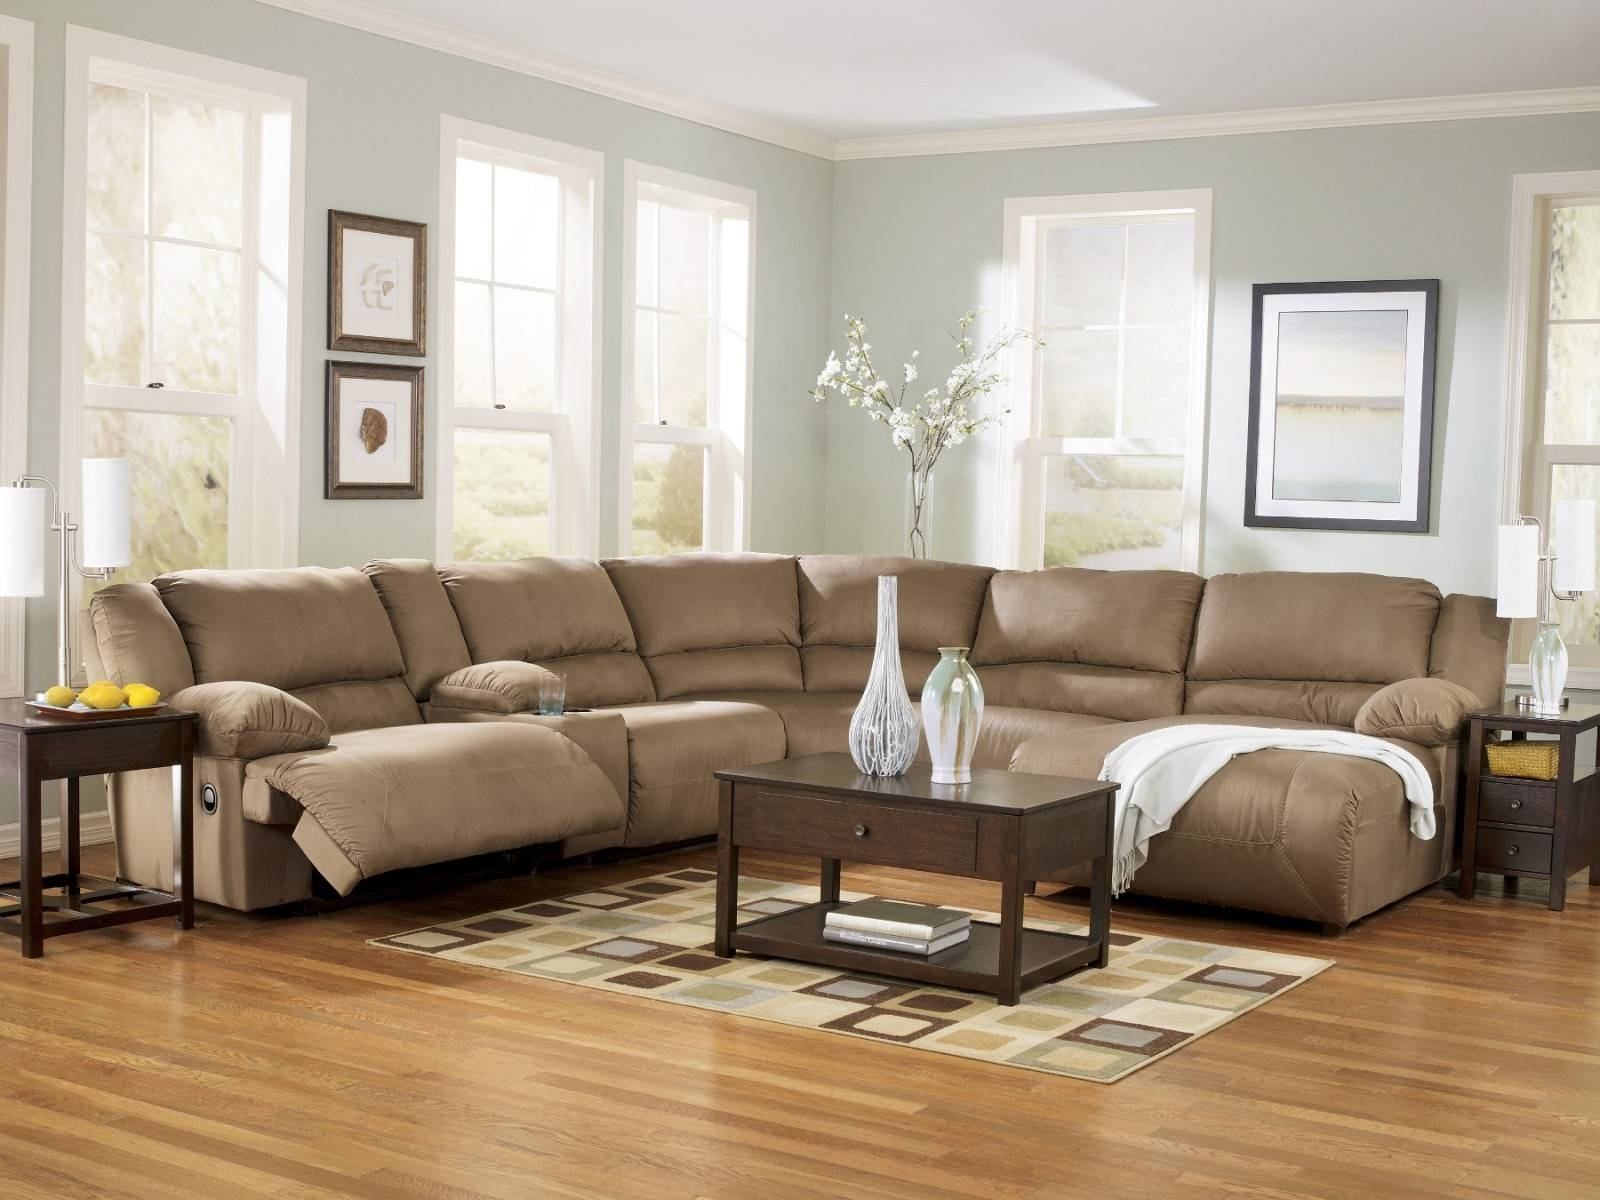 ▻ Sofa : 27 Living Room Sectional Ideas Sofas For Small Modern Within Cool Small Sofas (View 30 of 30)